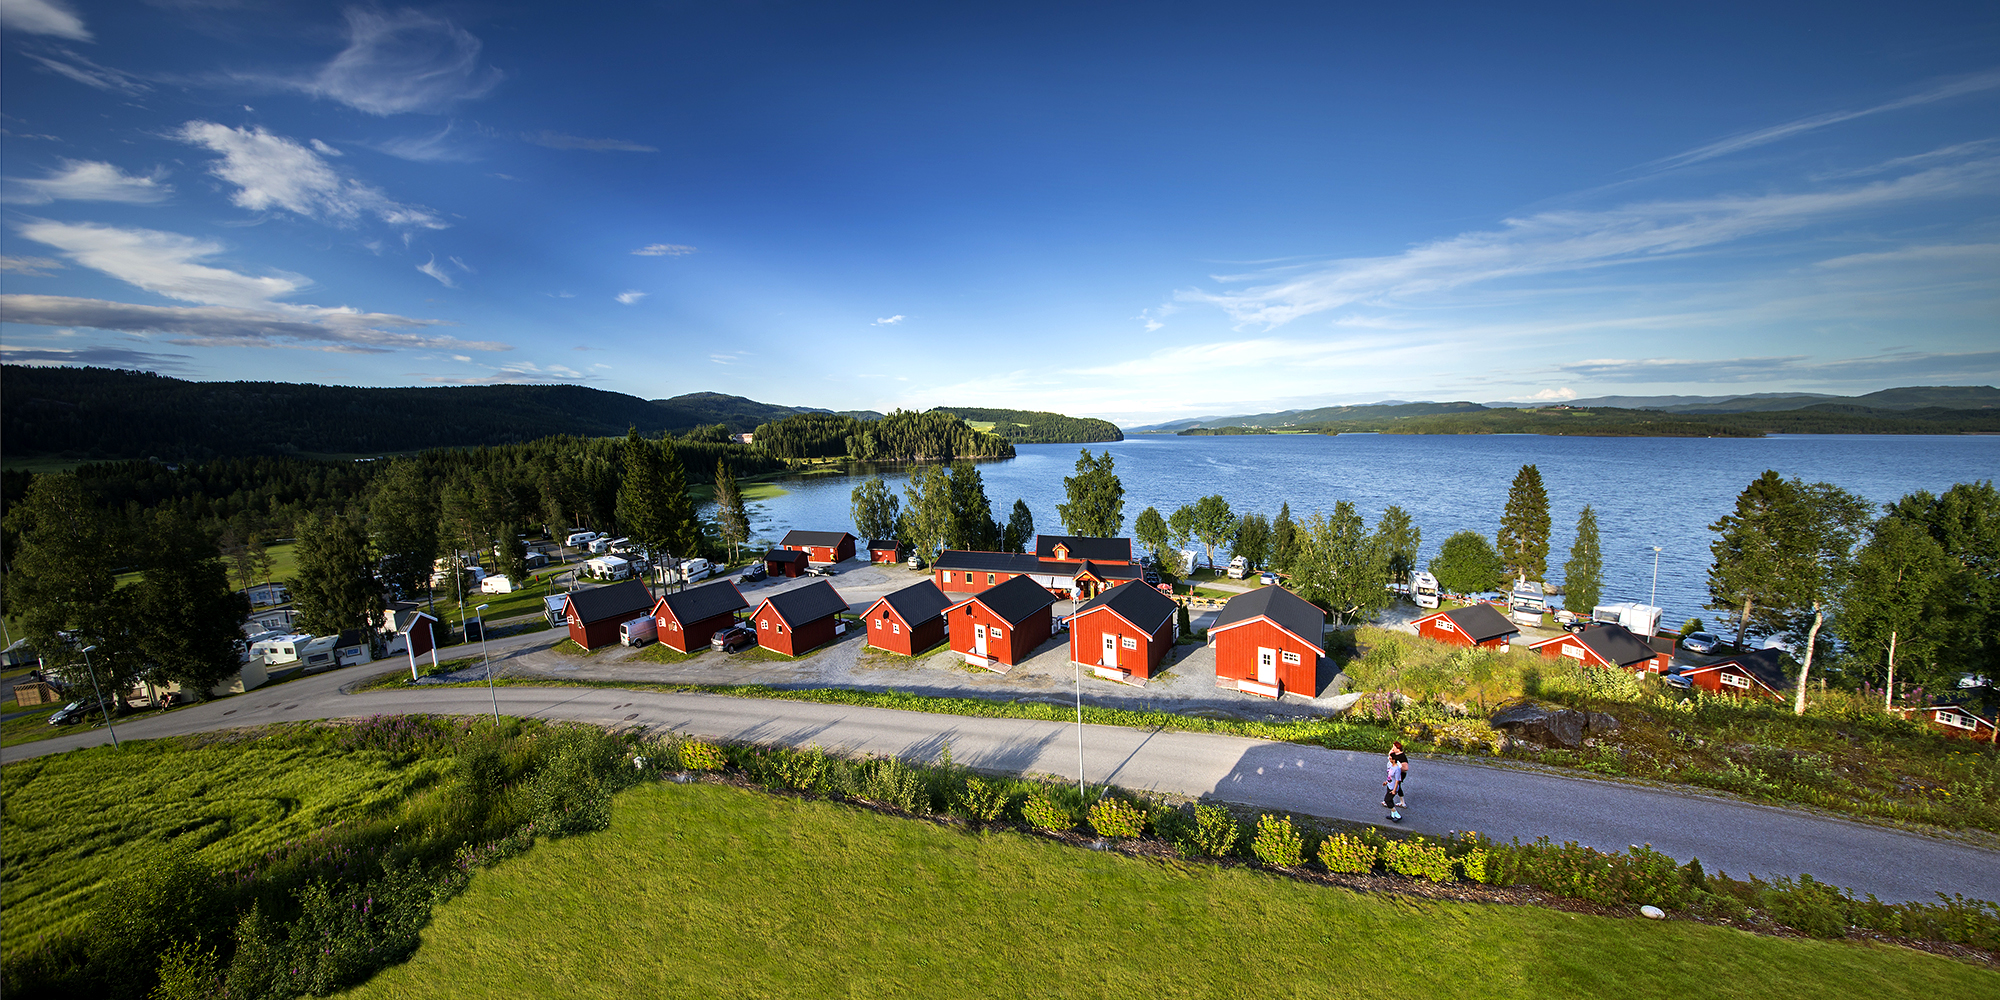 Overview picture of the camping site. Copyright: Steinar Johansen